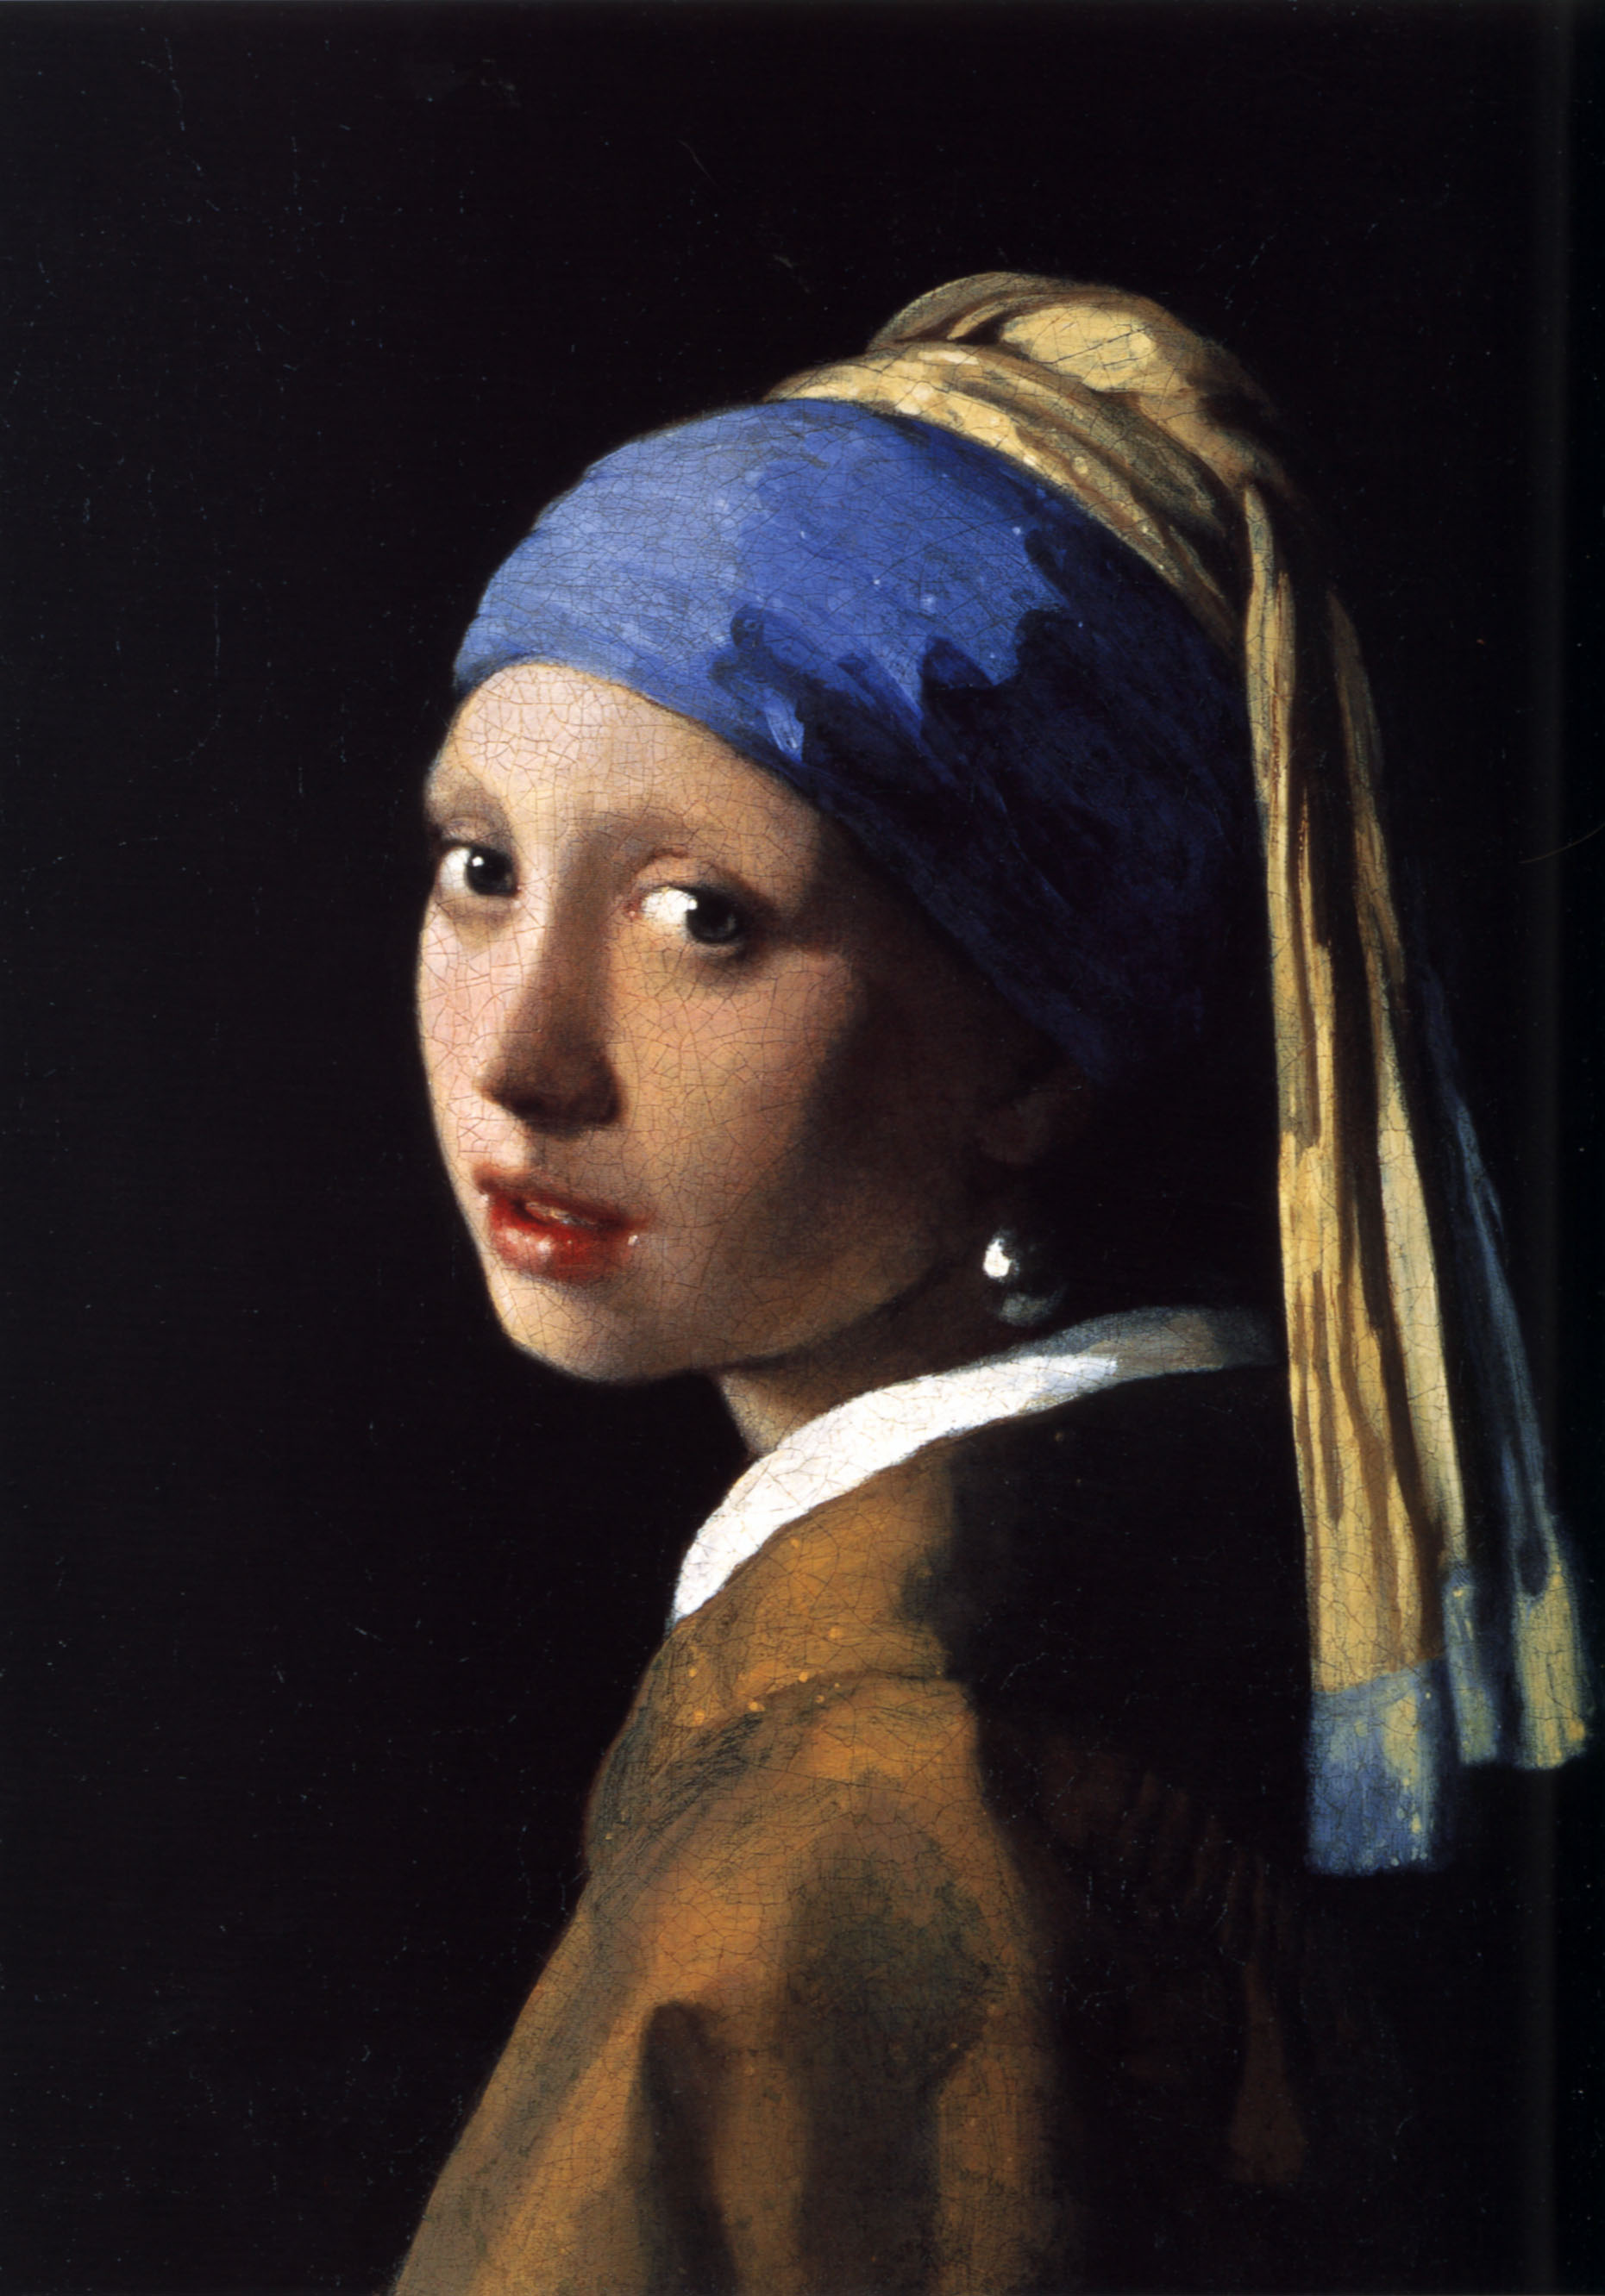 File:Johannes Vermeer (1632-1675) - The Girl With The Pearl Earring